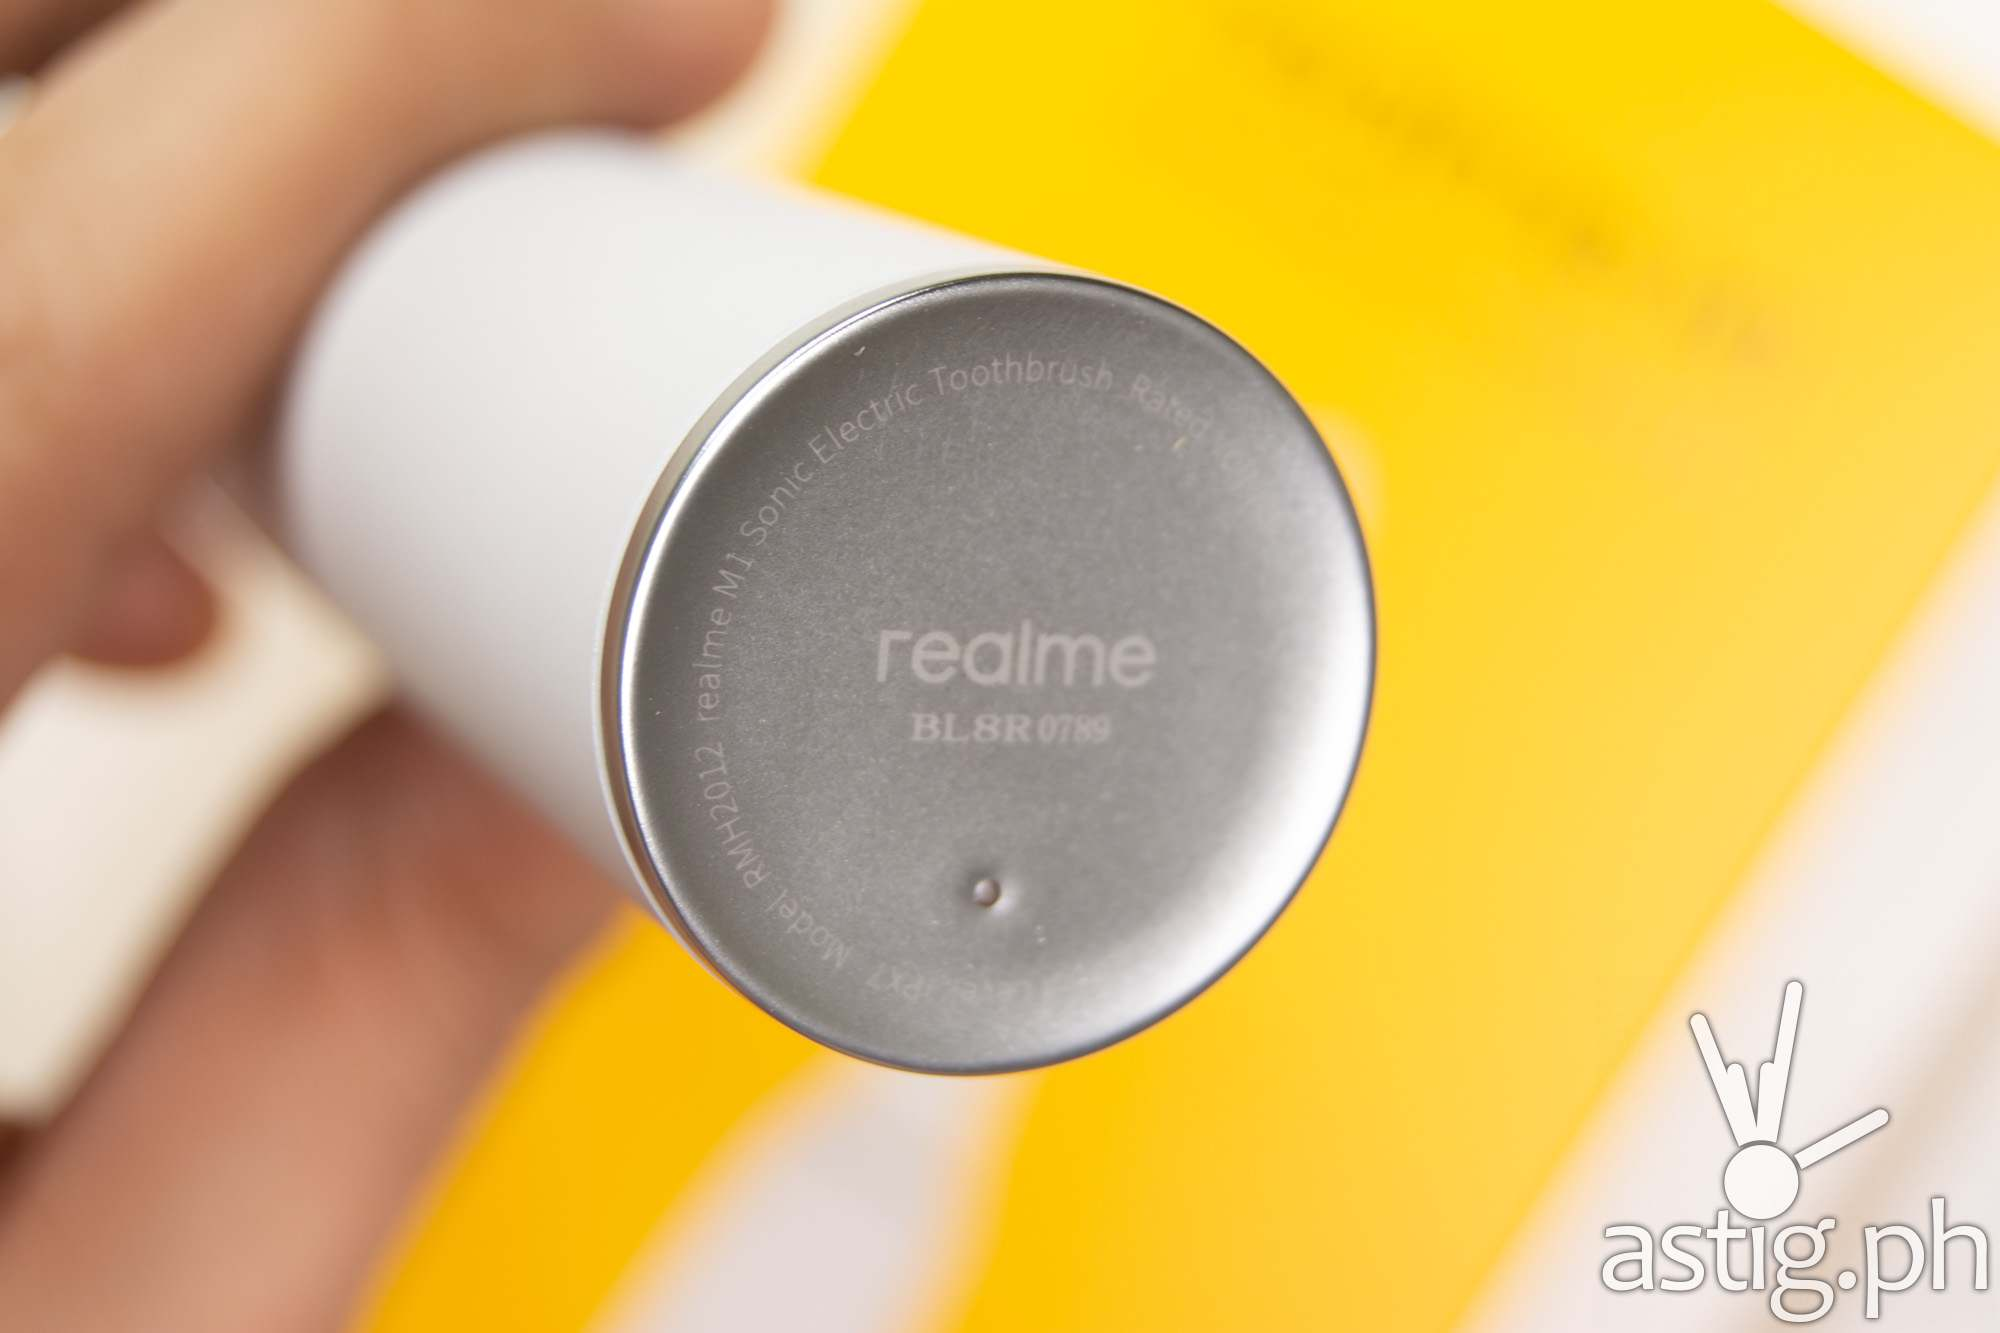 Base closeup - realme M1 Sonic Electric Toothbrush (Philippines)